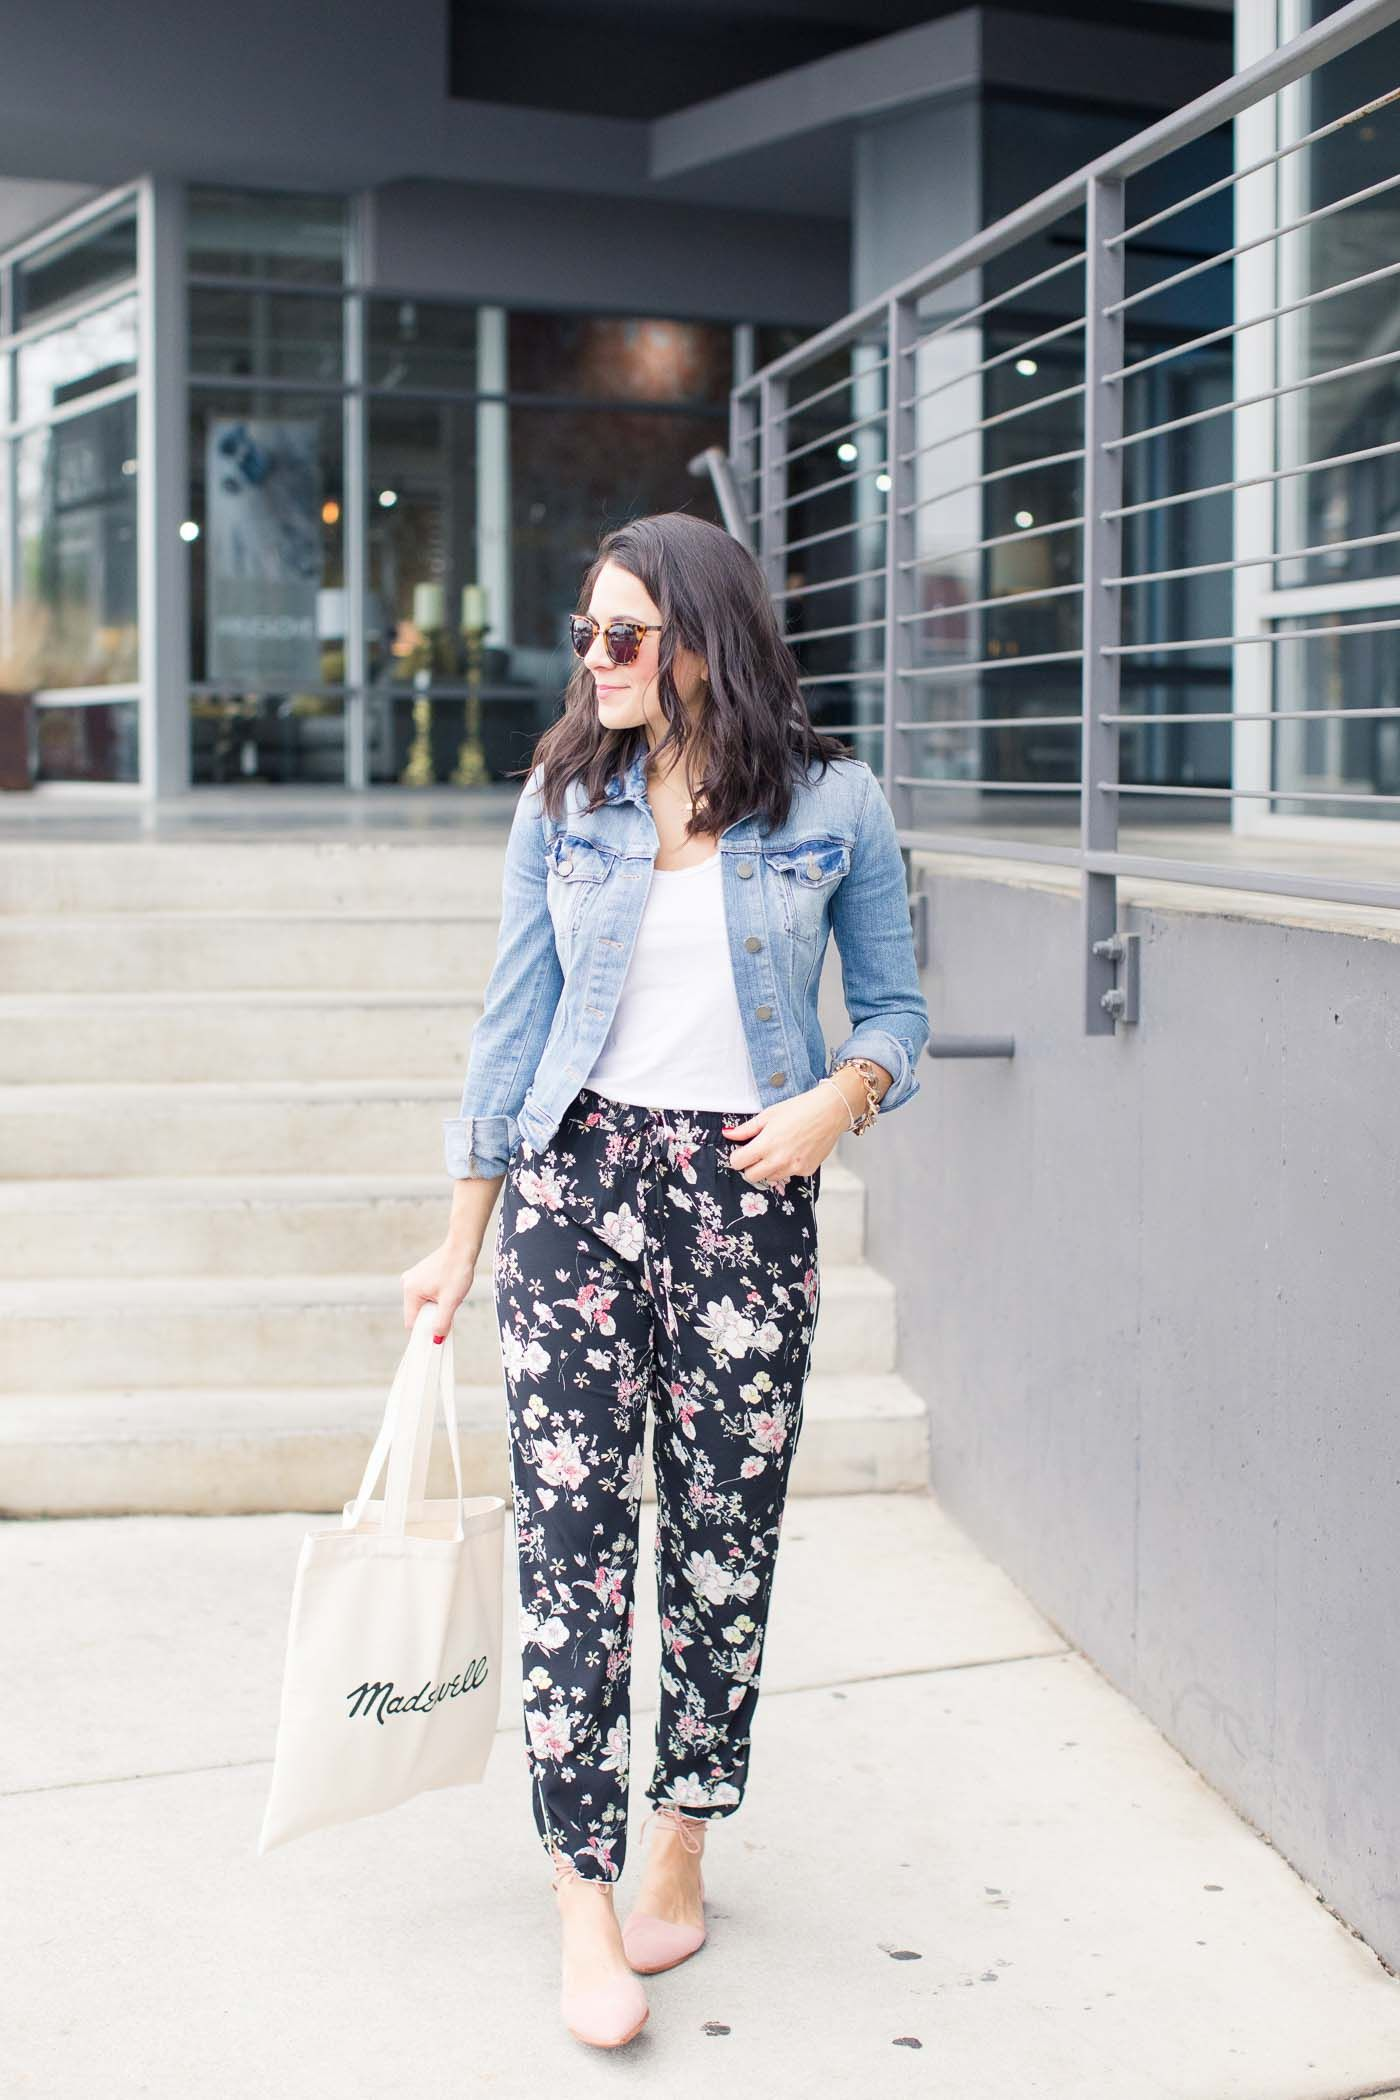 How To Style Floral Joggers Floral Pants Outfit Floral Pants